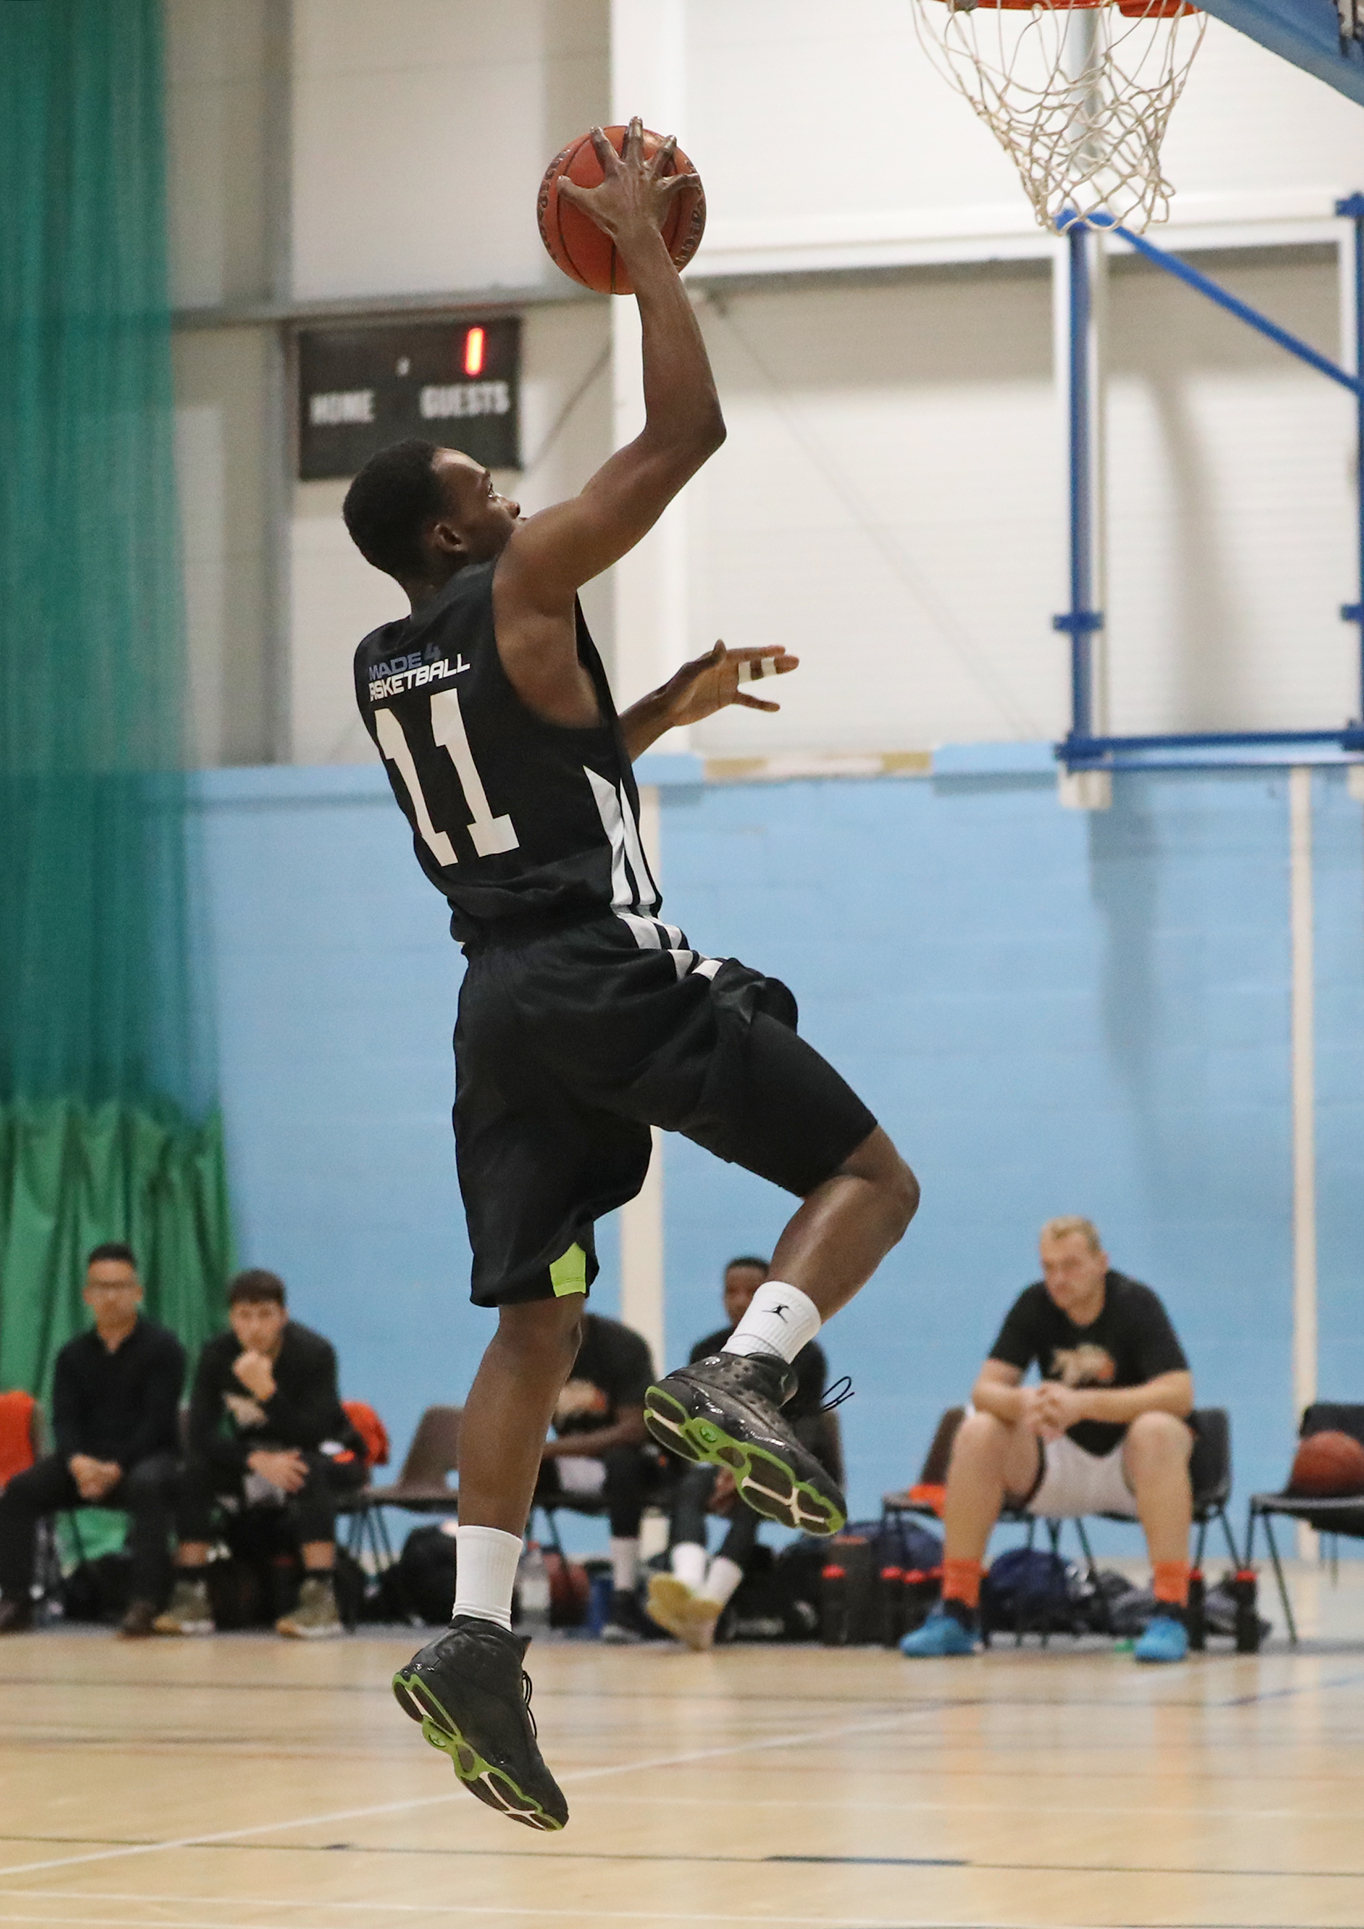 Jermayne Laing bucketed an impressive 22 points for Bradford Dragons in their 114-84 win over Hemel Storm in Division One of the National Basketball League Picture: Alex Daniel Photography